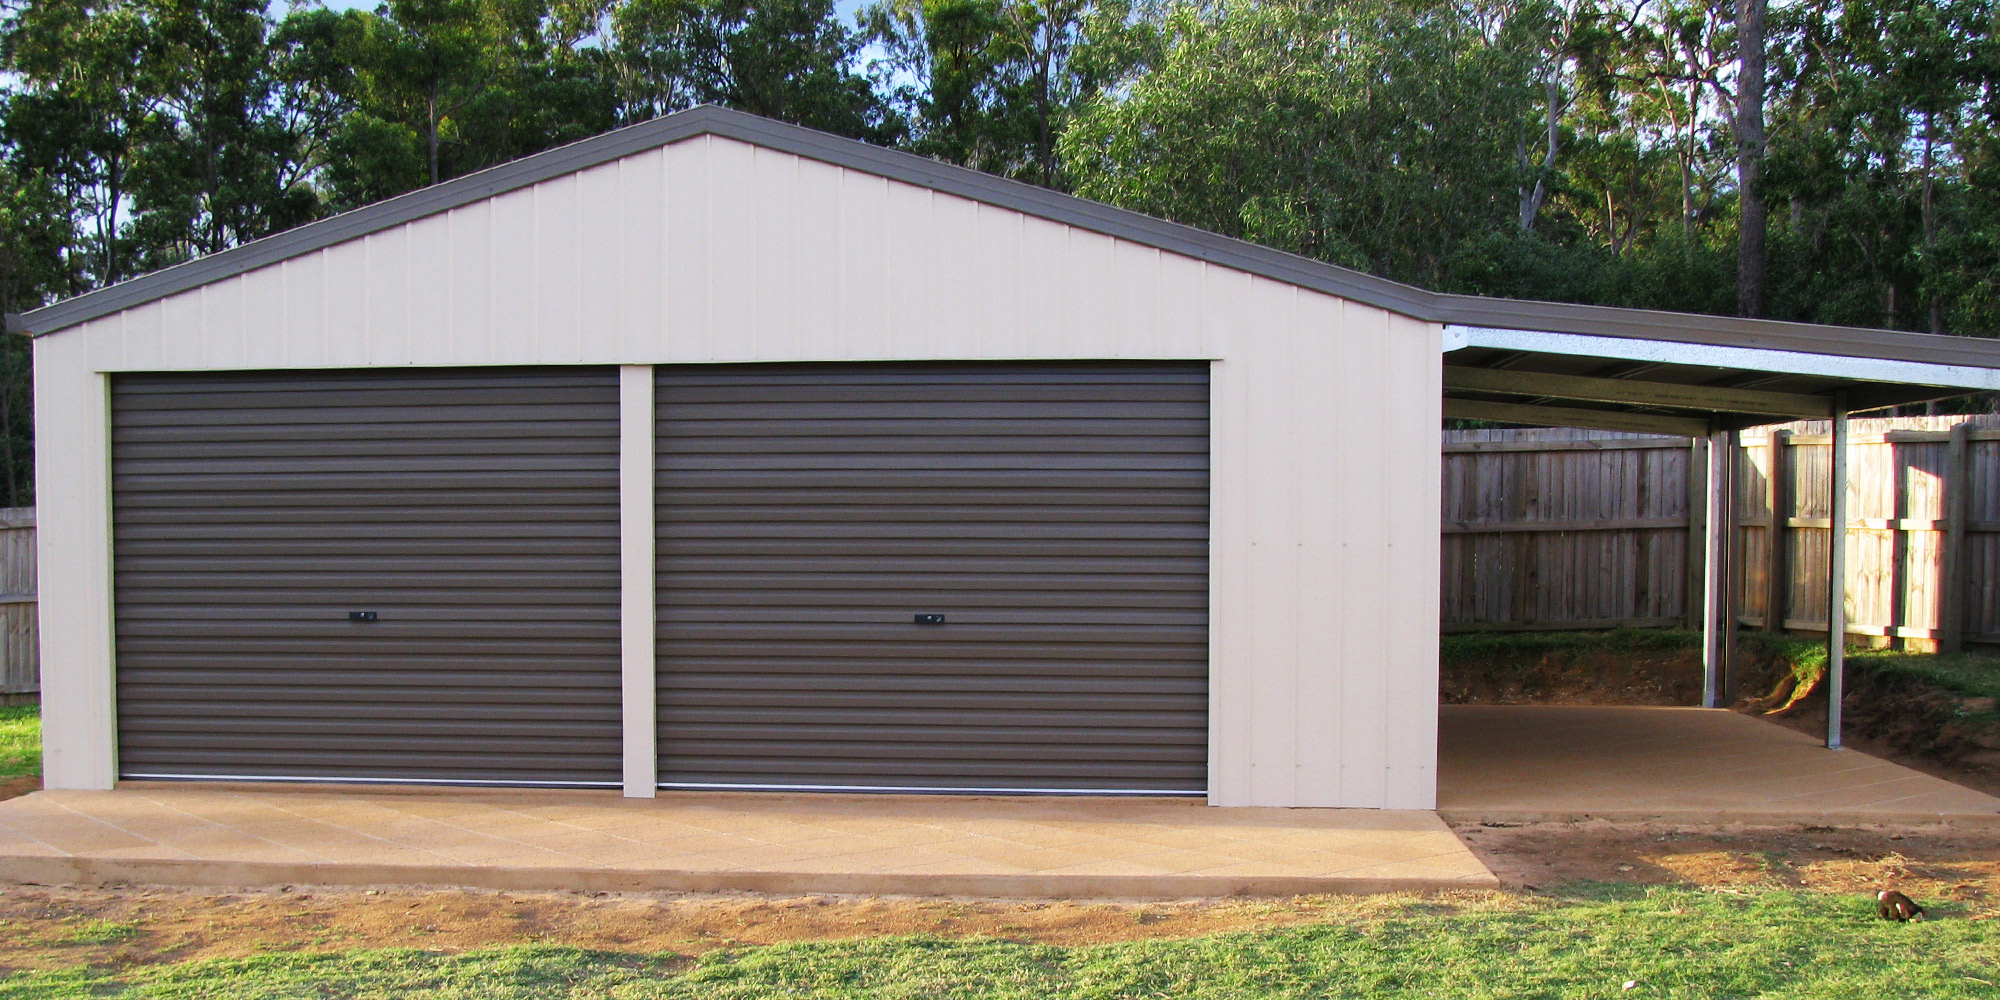 Totally Sheds Garage with Leanto